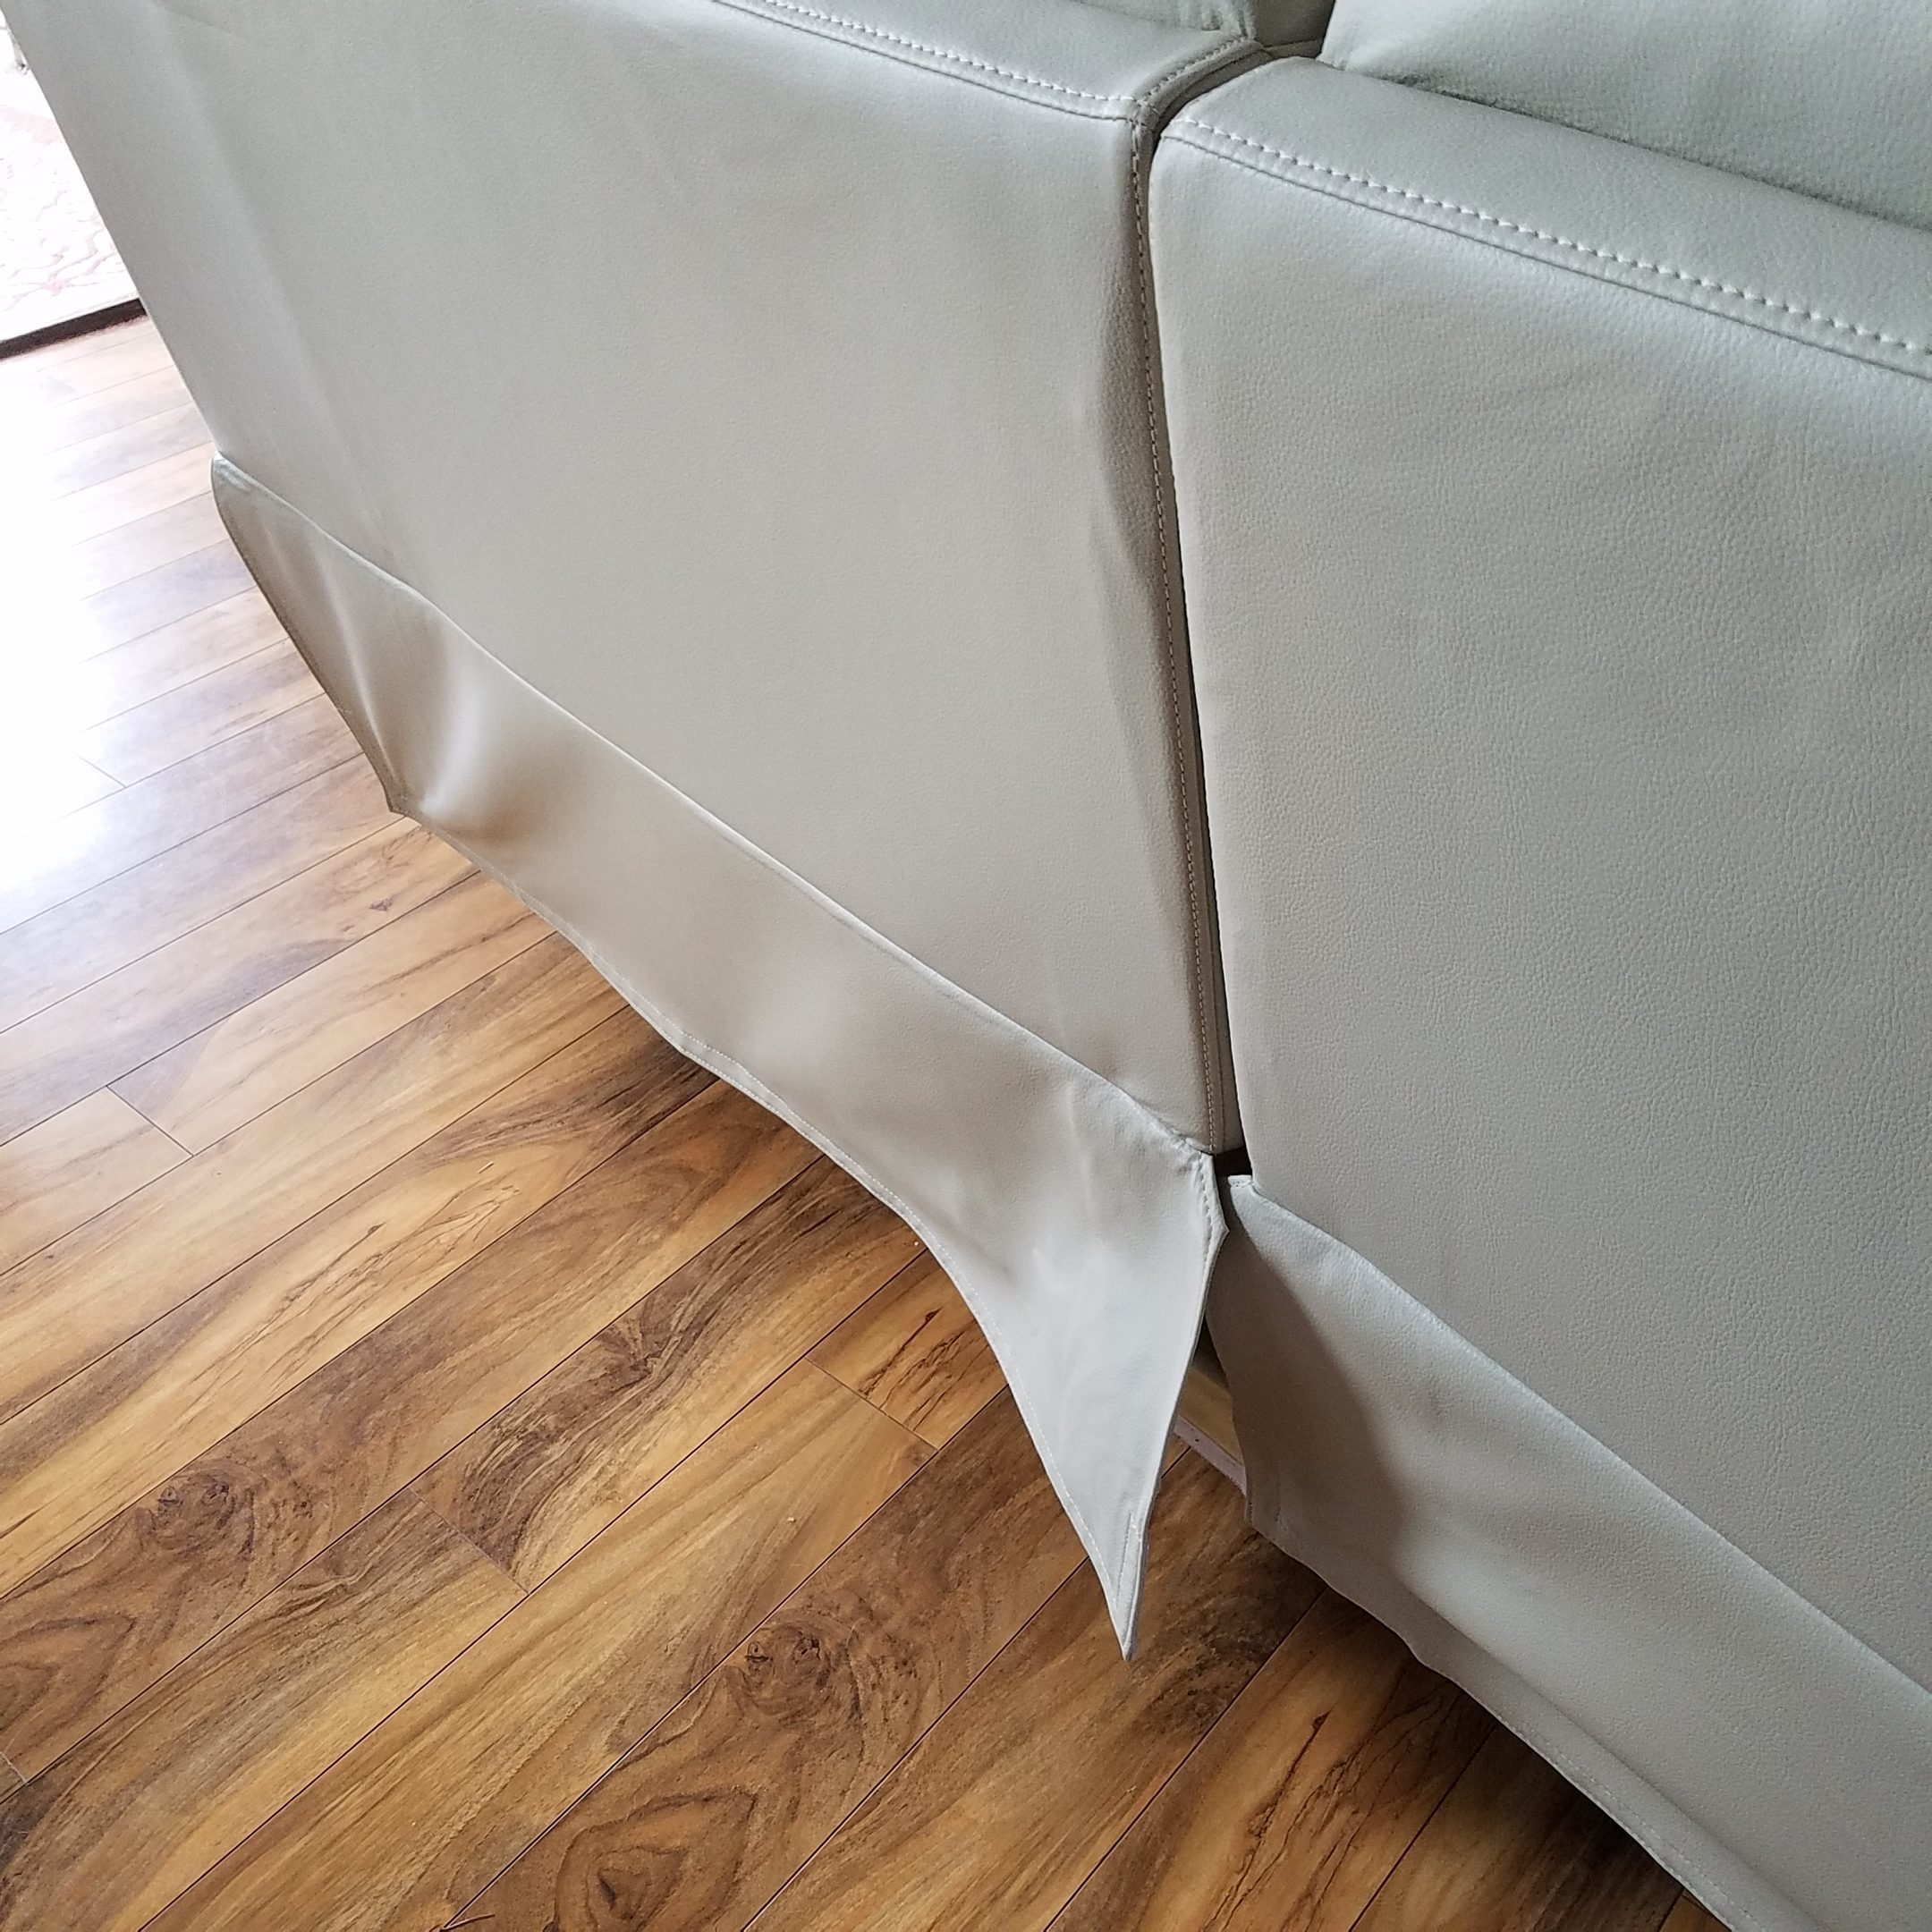 In May I Ordered Two Leather Sofas From Furniture ETC, An Authorized Ashley  Furniture Distributor   WHAT A JOKE. After Dozens Of Phone Calls And  Refused ...